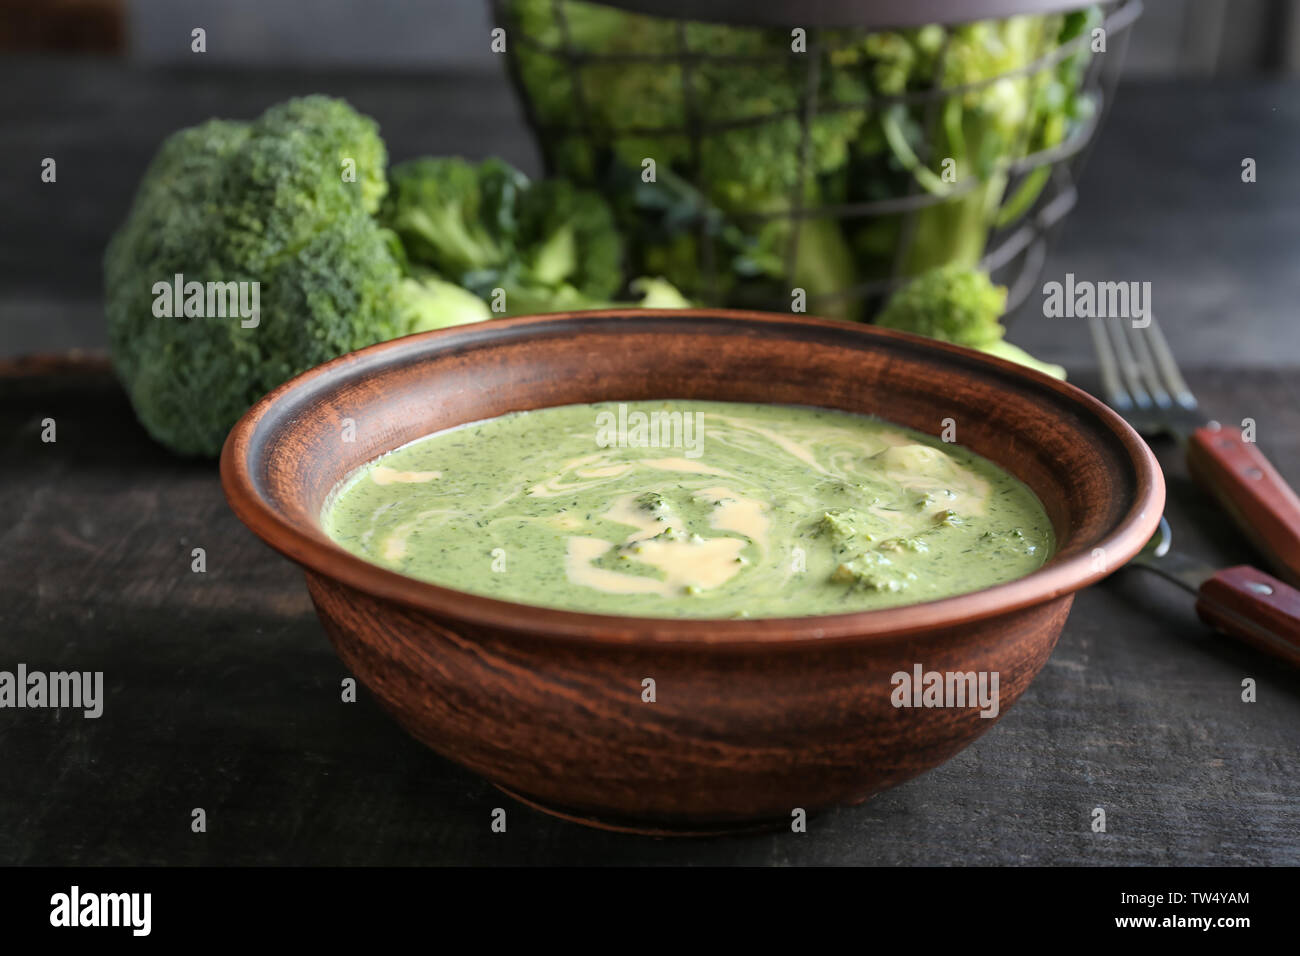 Bowl with delicious broccoli cheese soup on table - Stock Image